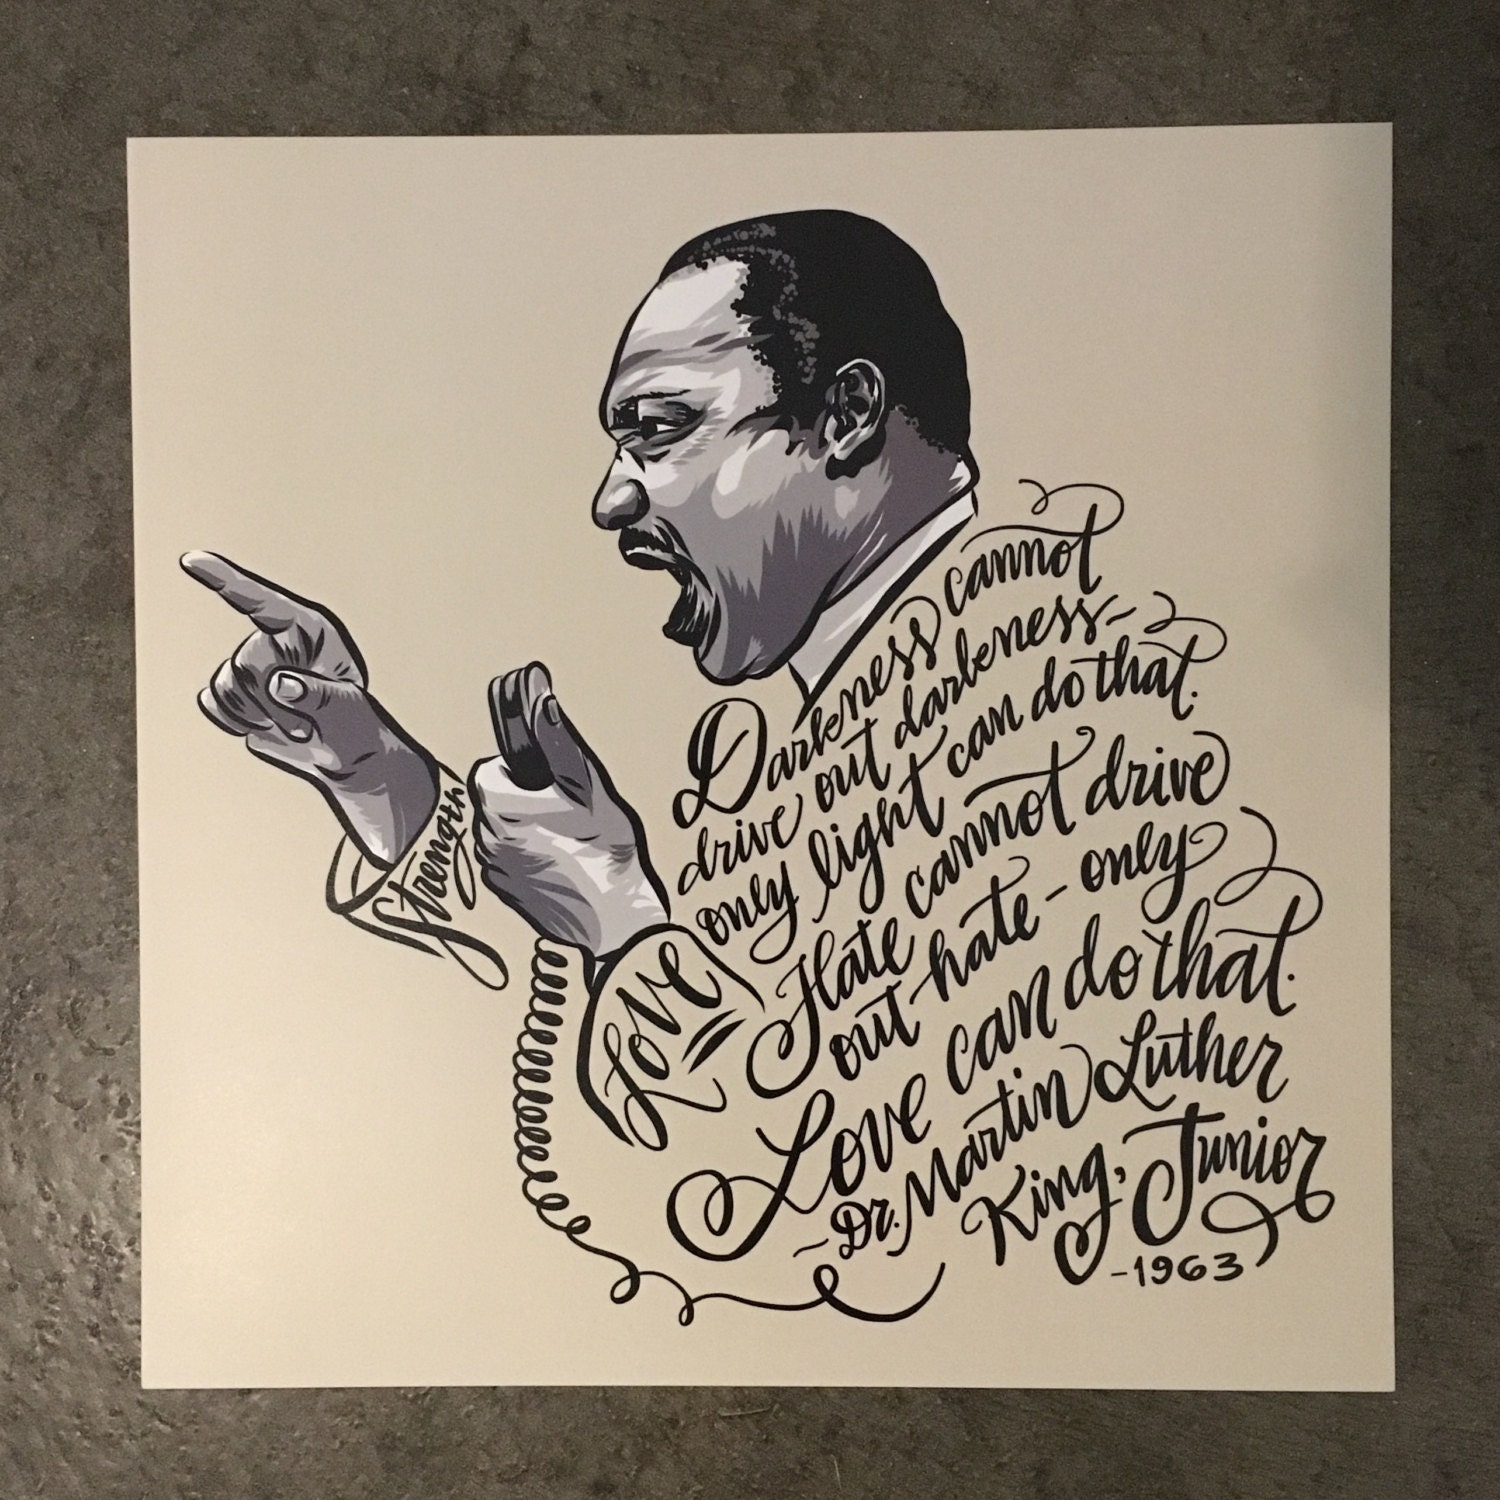 This is a graphic of Gargantuan Drawing Of Martin Luther King